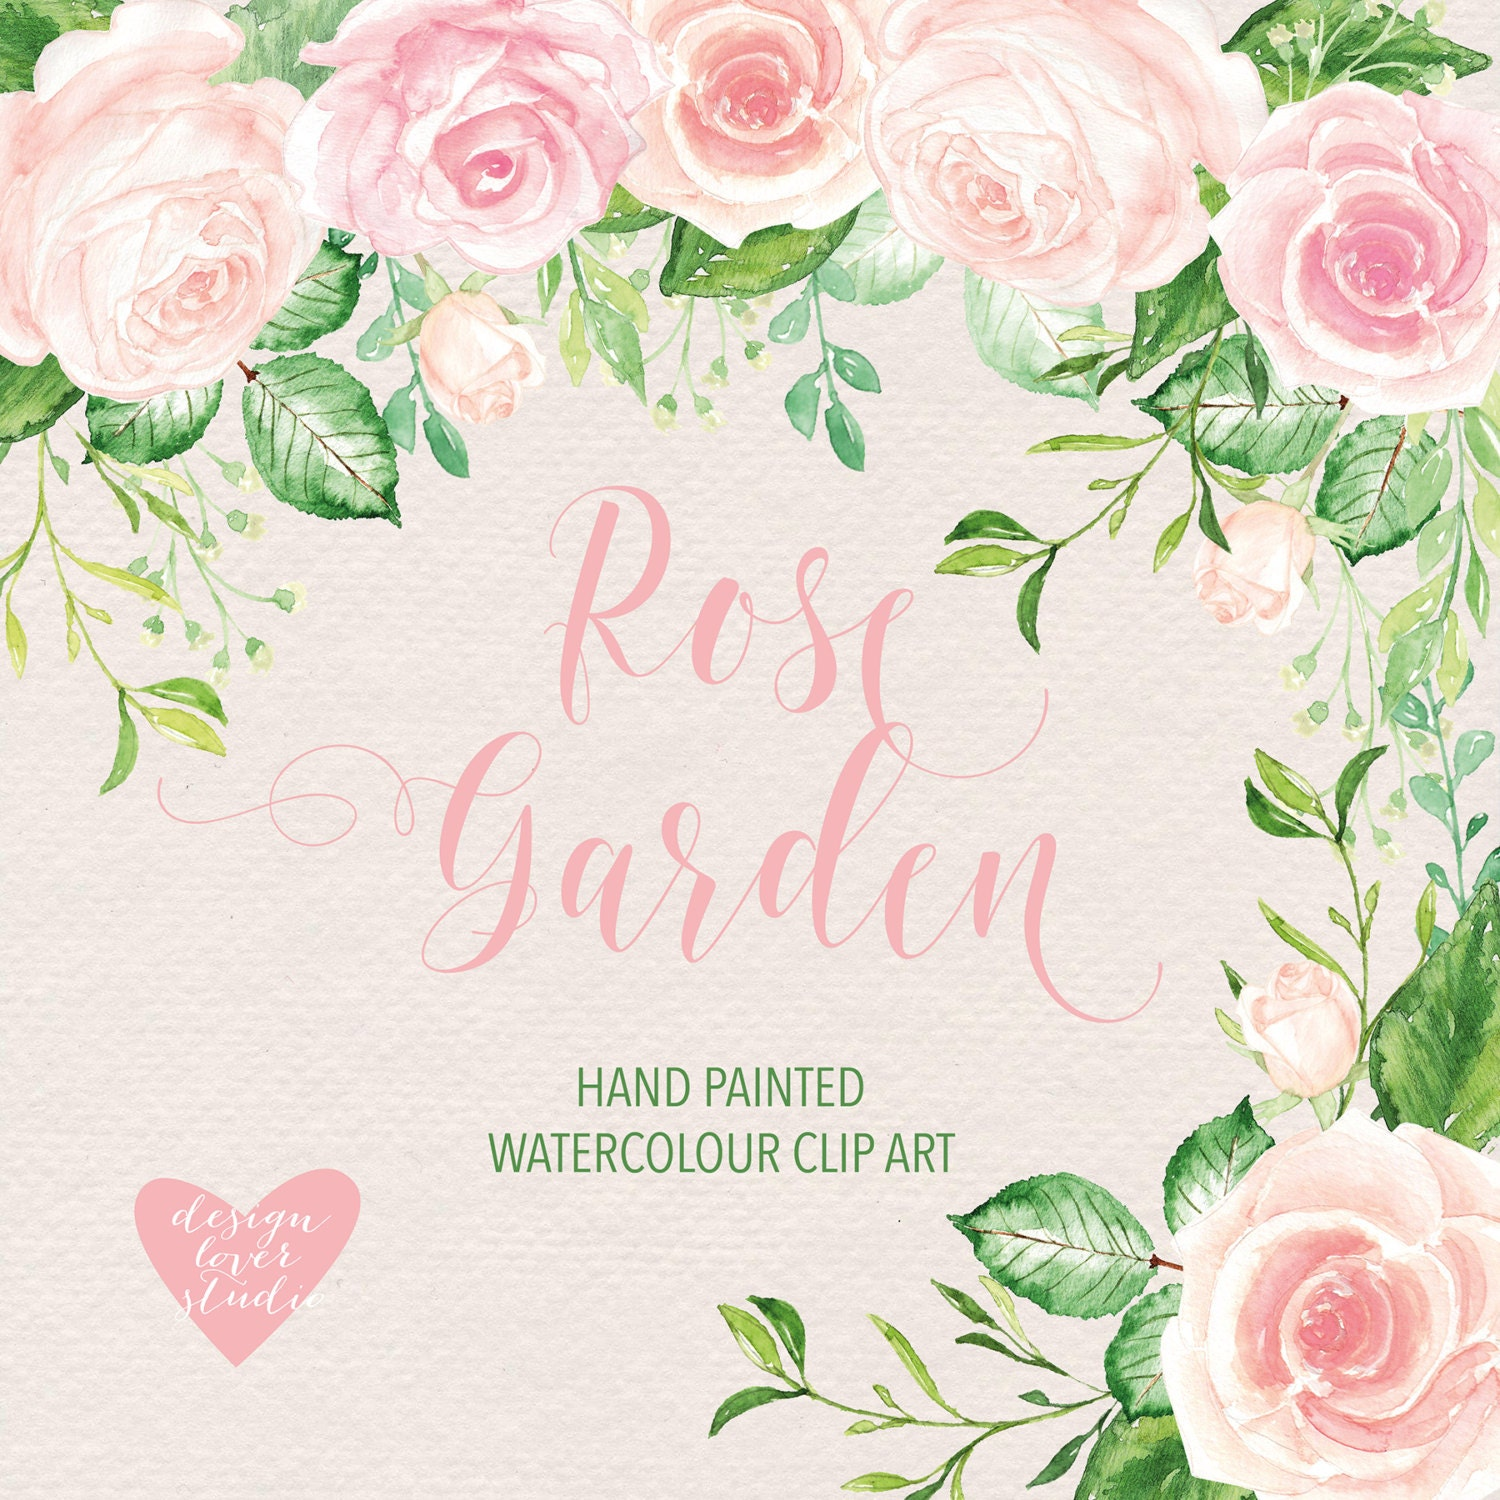 Watercolor Rose Blush Clipart Watercolor Flower Pink Floral